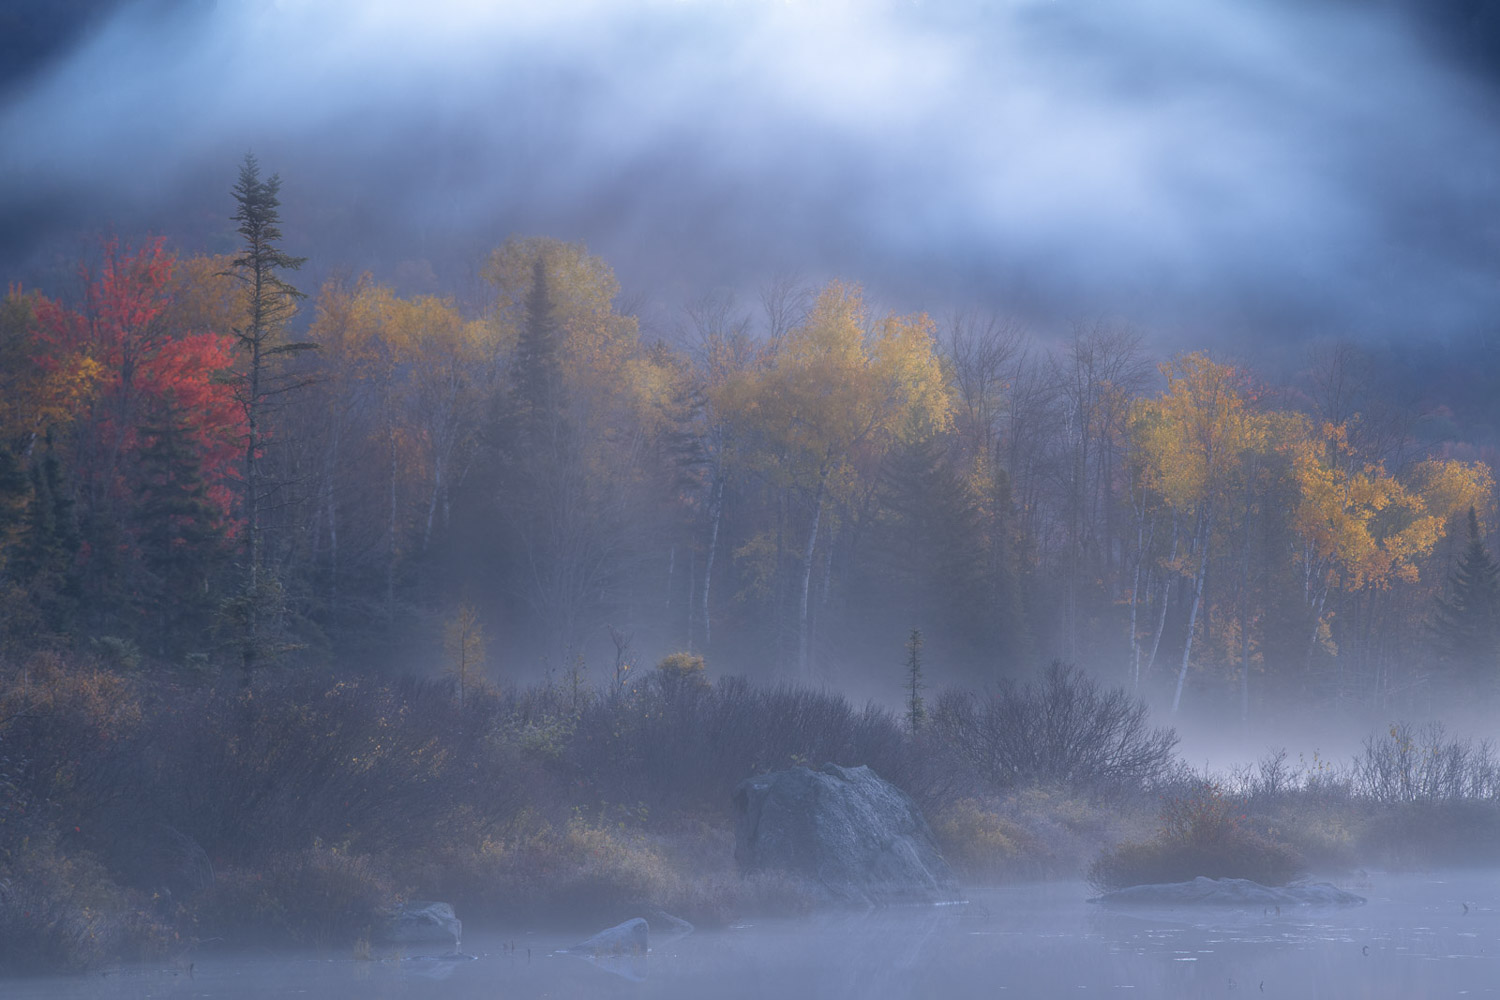 Morning fog and autumn colors at twilight on a pond in Vermont.